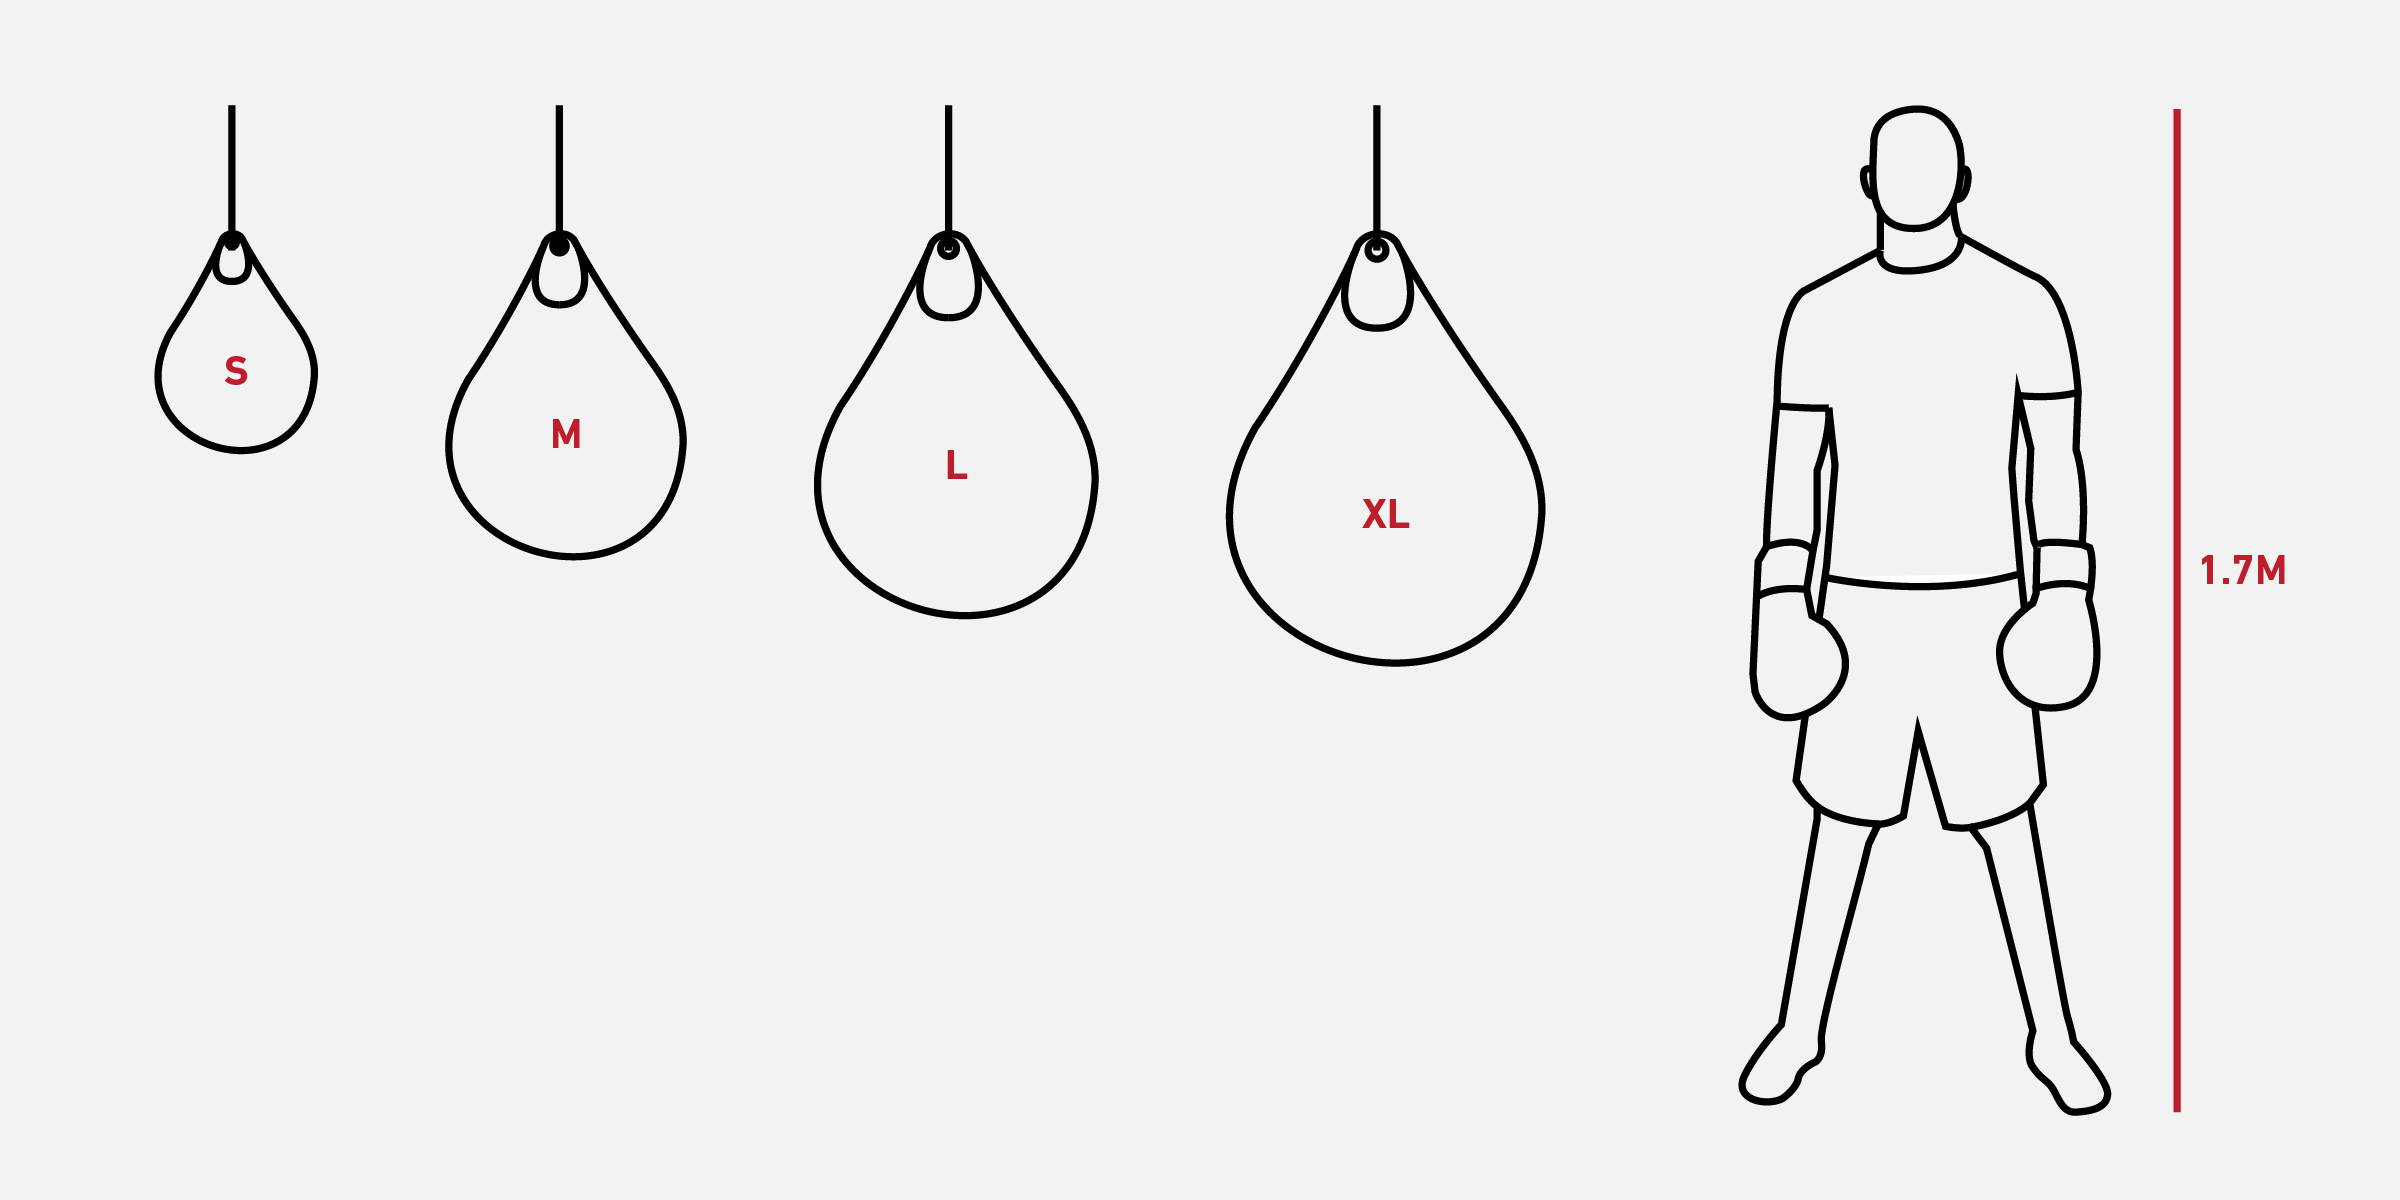 Water bag sizing illustration